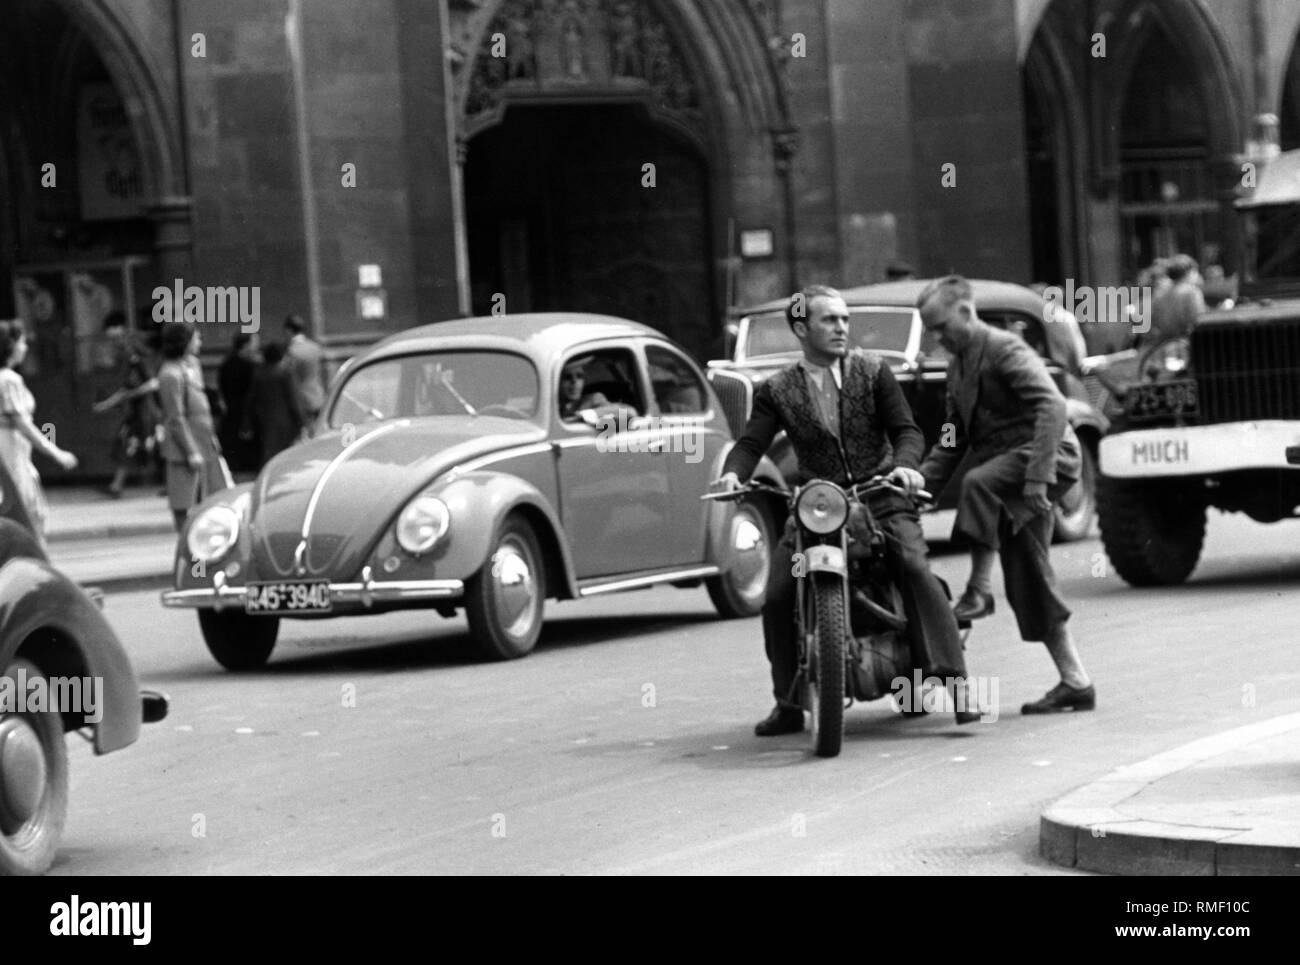 Busy road traffic on the Marienplatz in the Munich city center. The picture shows a VW Beetle, and two men on a motorcycle. - Stock Image